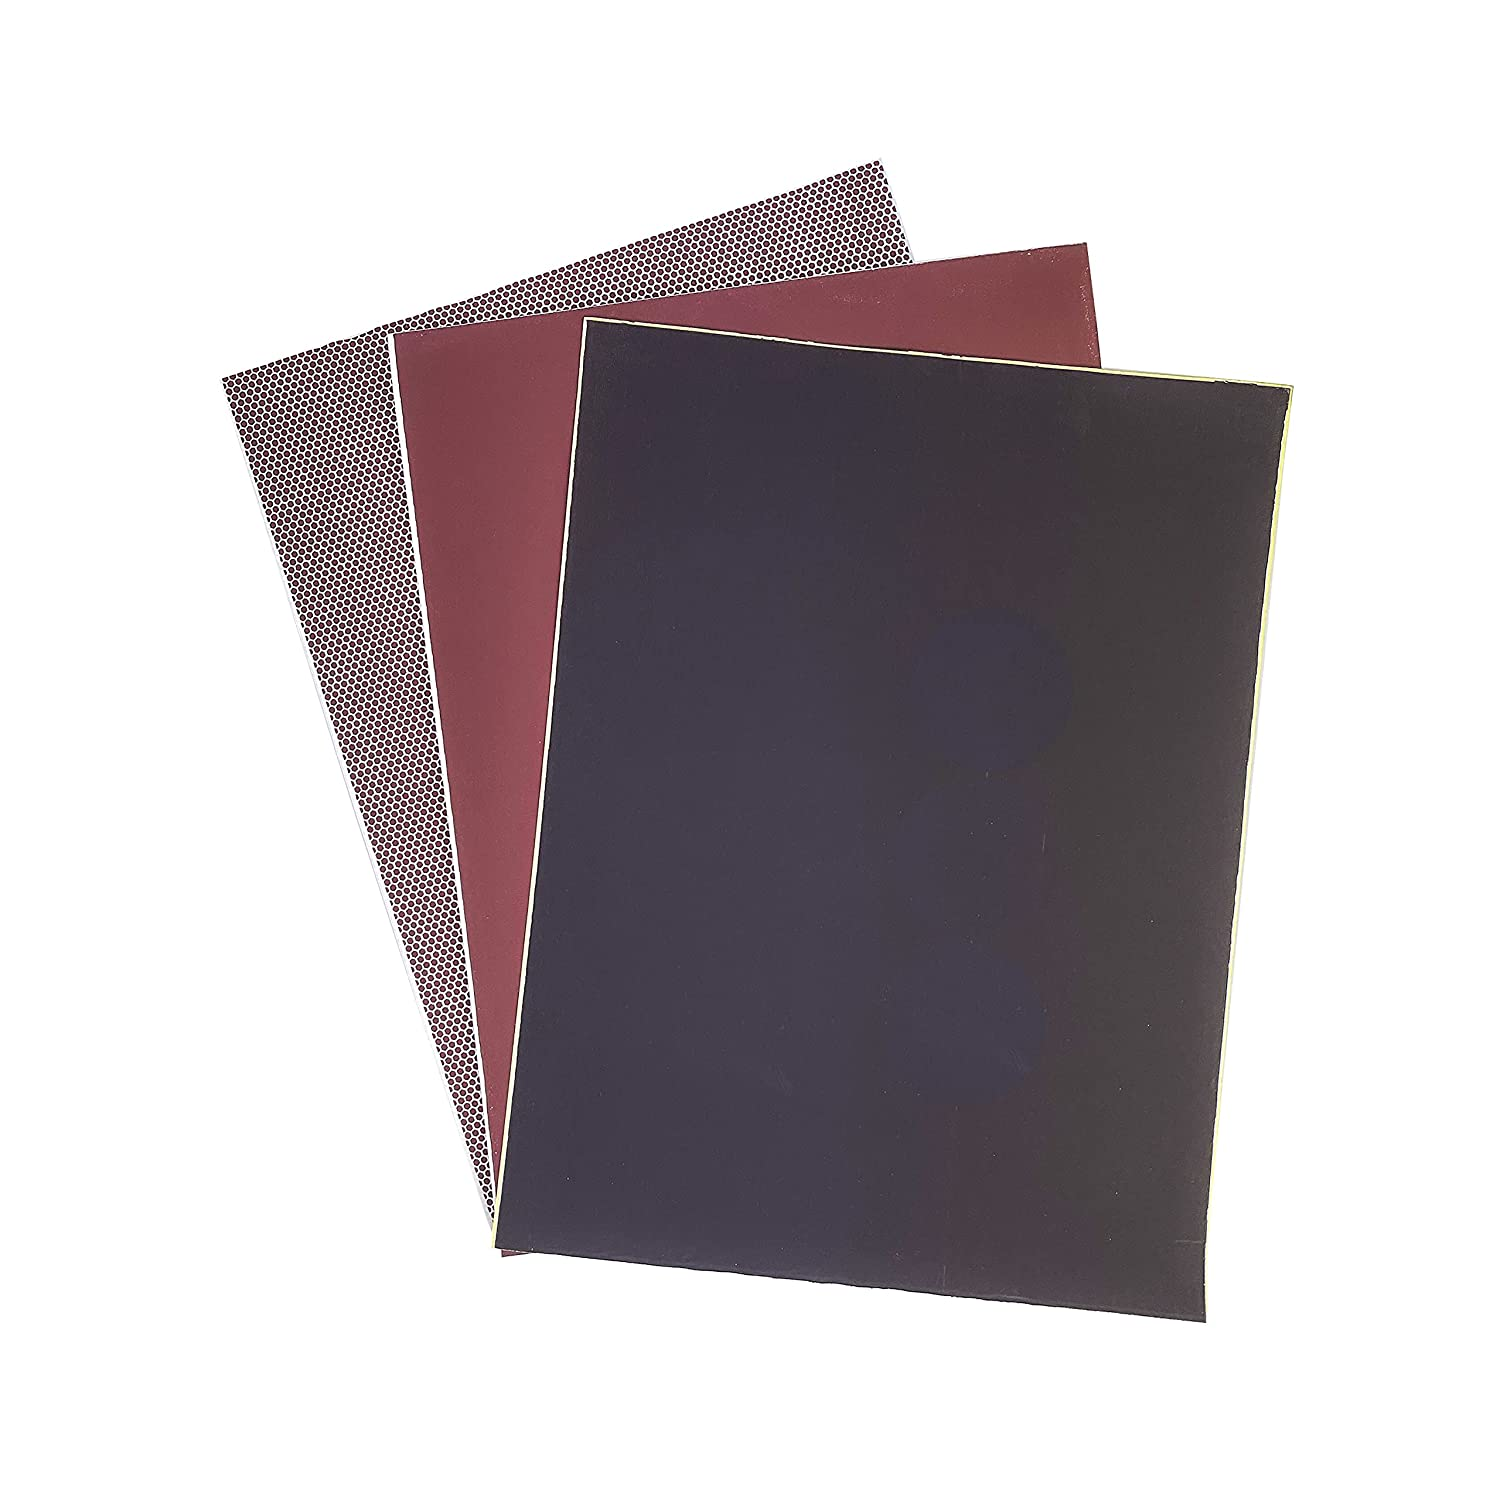 A surprise price is realized Match Strike Gorgeous Paper Striker Self Adhesive 8.5 Sheets